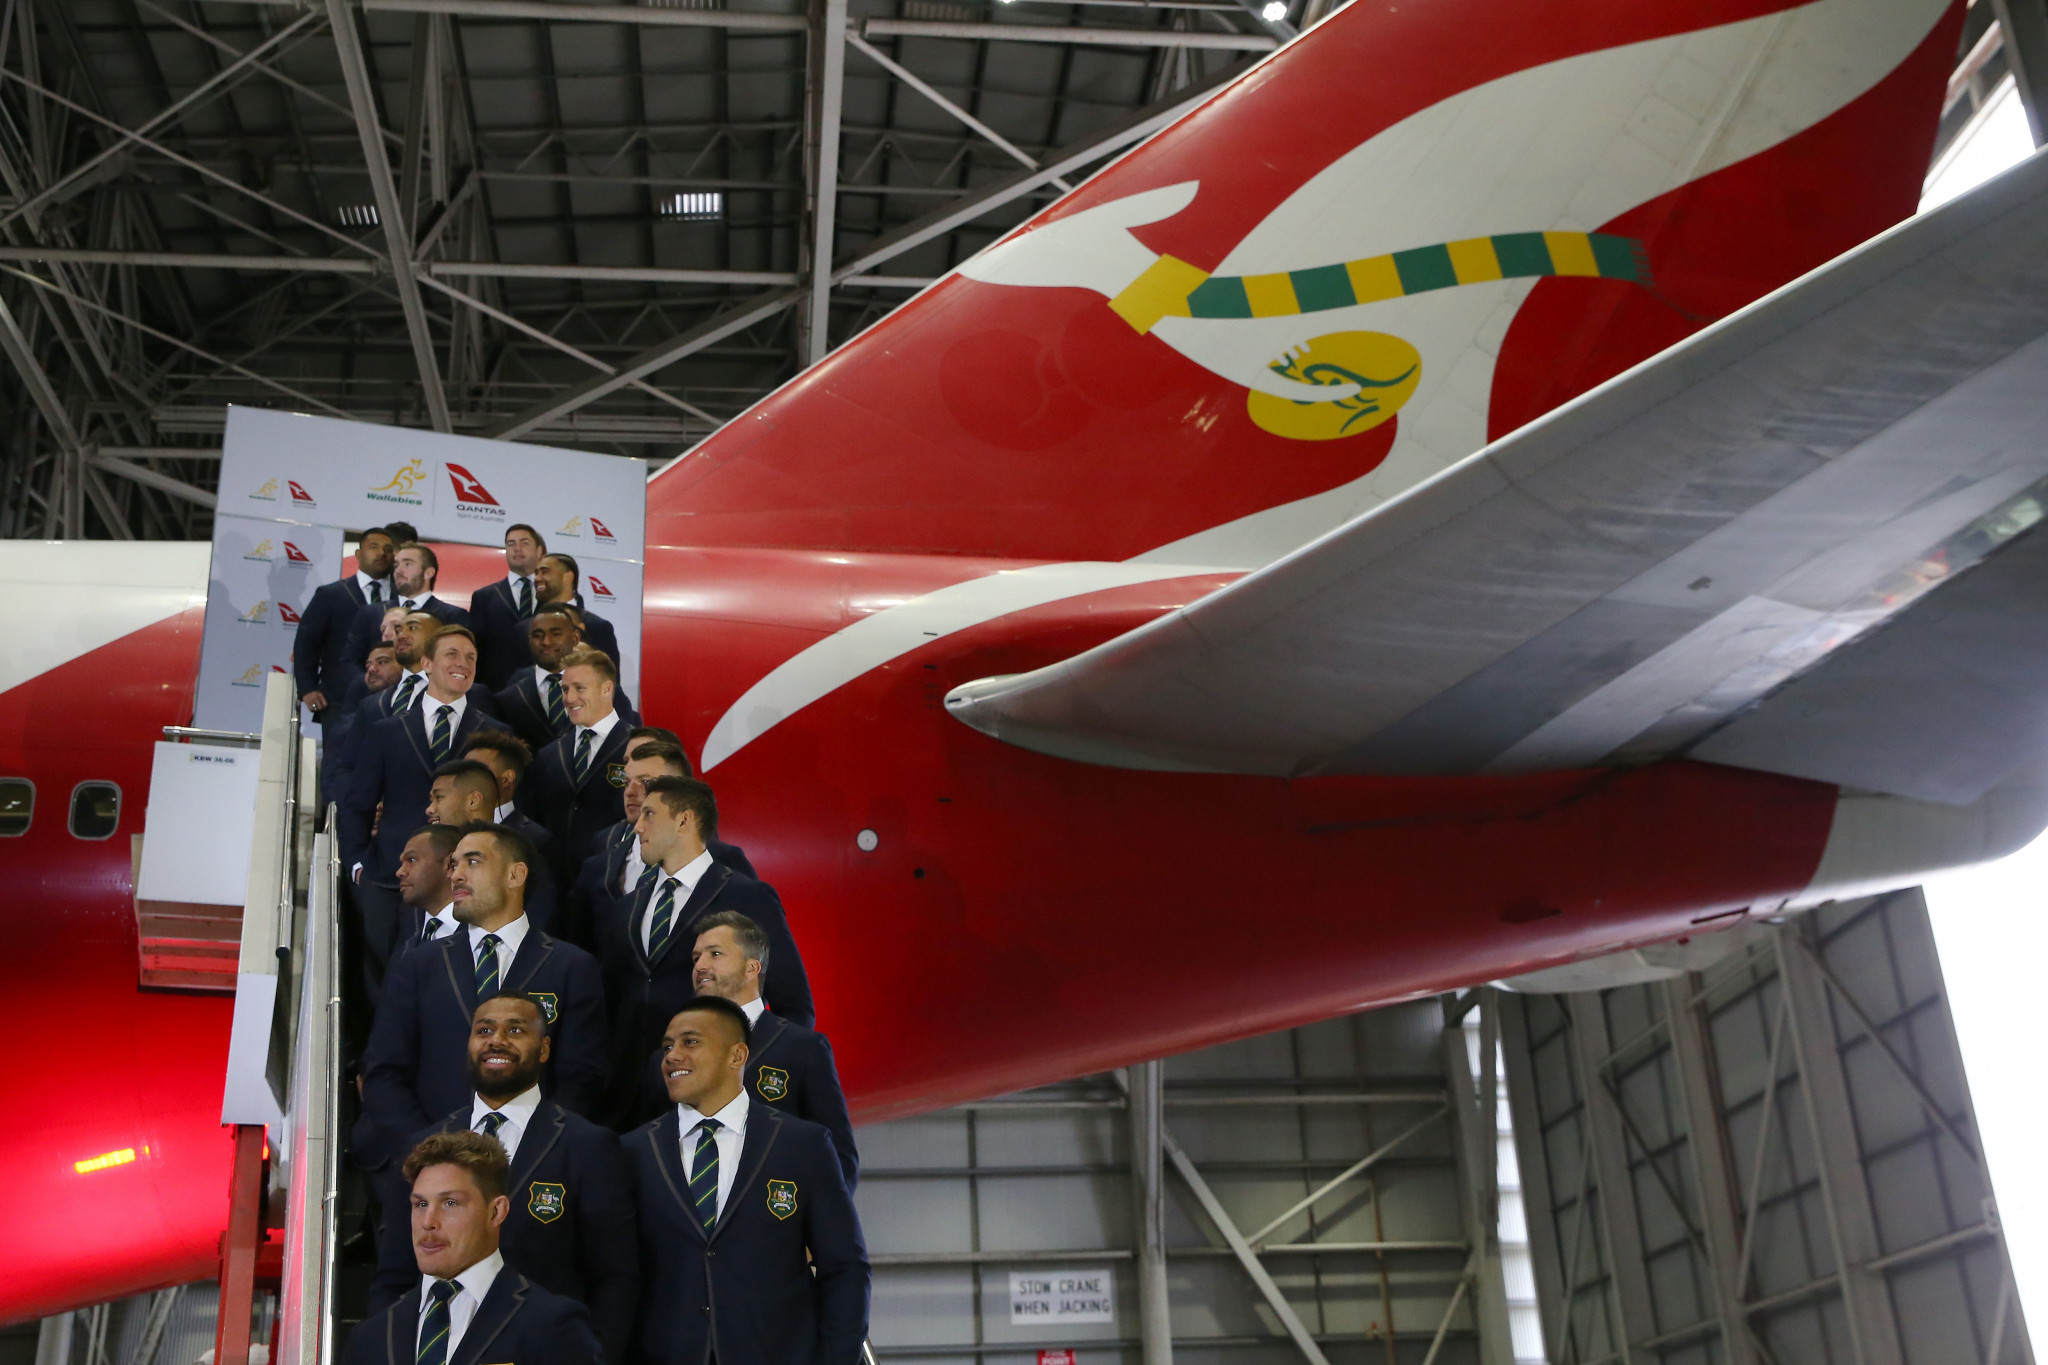 Qantas ends 30-year partnership with Rugby Australia as economic fallout of pandemic continues